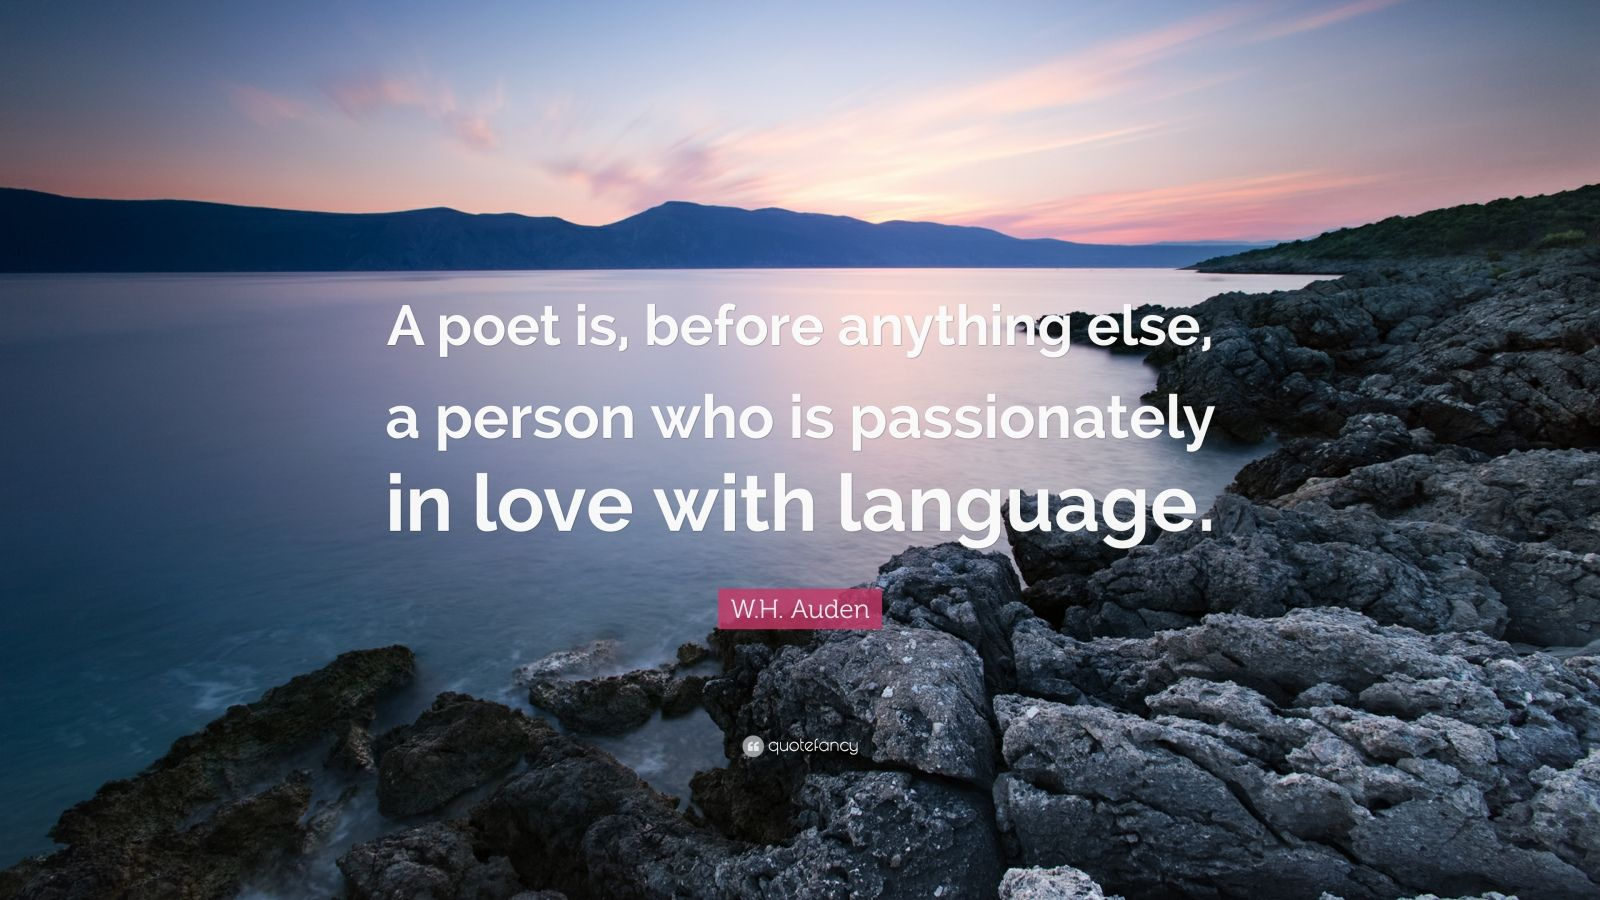 """W.H. Auden Quote: """"A poet is, before anything else, a person who is passionately in love with language."""""""